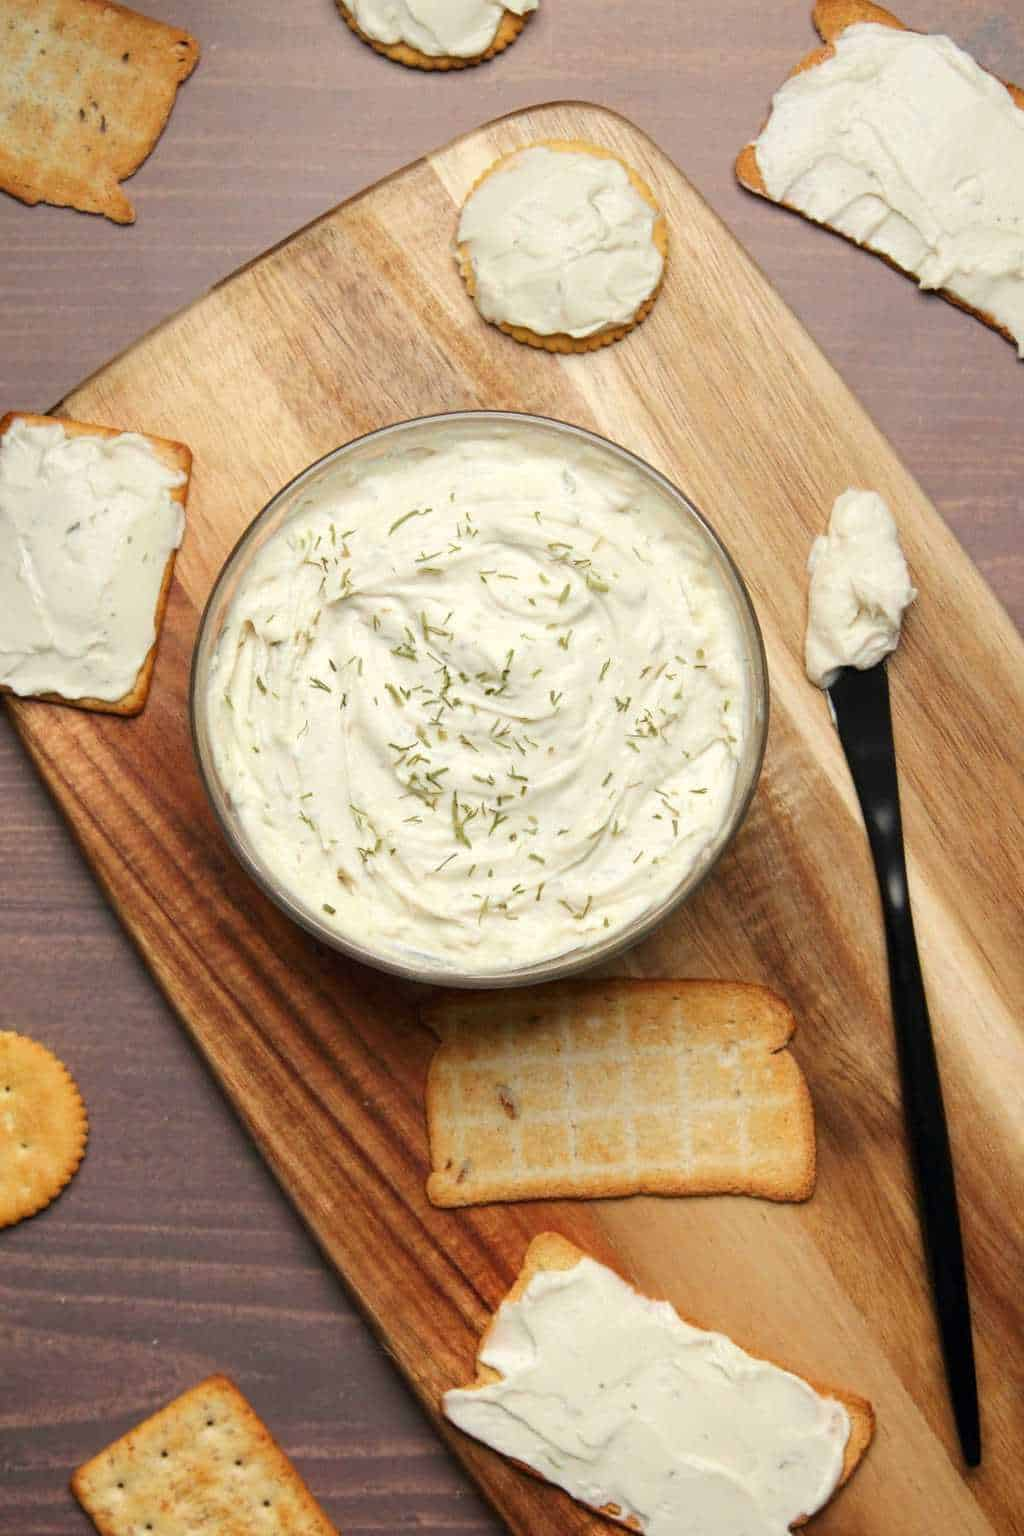 Vegan cream cheese in a glass dish surrounded by crackers.